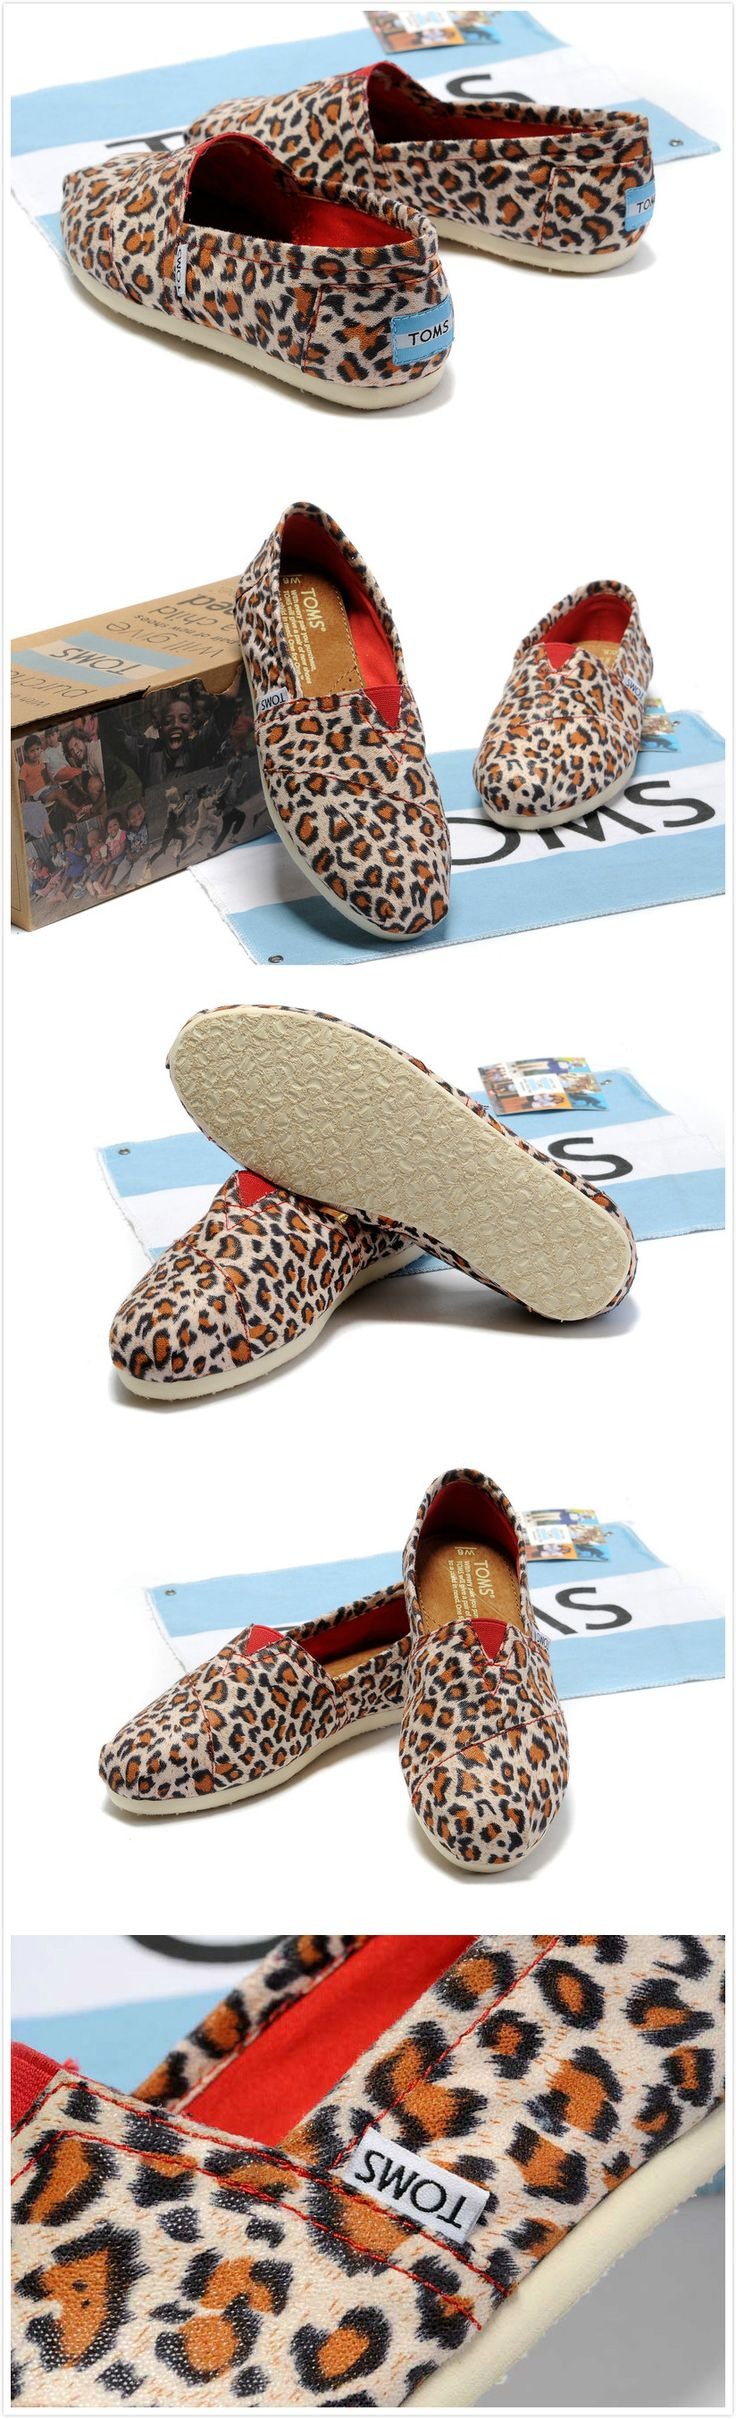 Toms Classic Shoes Canvas Women Leopard  for $17.59. Just so you know, I am on board! Pin It To Win It: https://docs.google.com/forms/d/1-p7ci16H2KQkNgoJ9Q8HDXW3UQkf-BML8qTUVCr5HOc/viewform